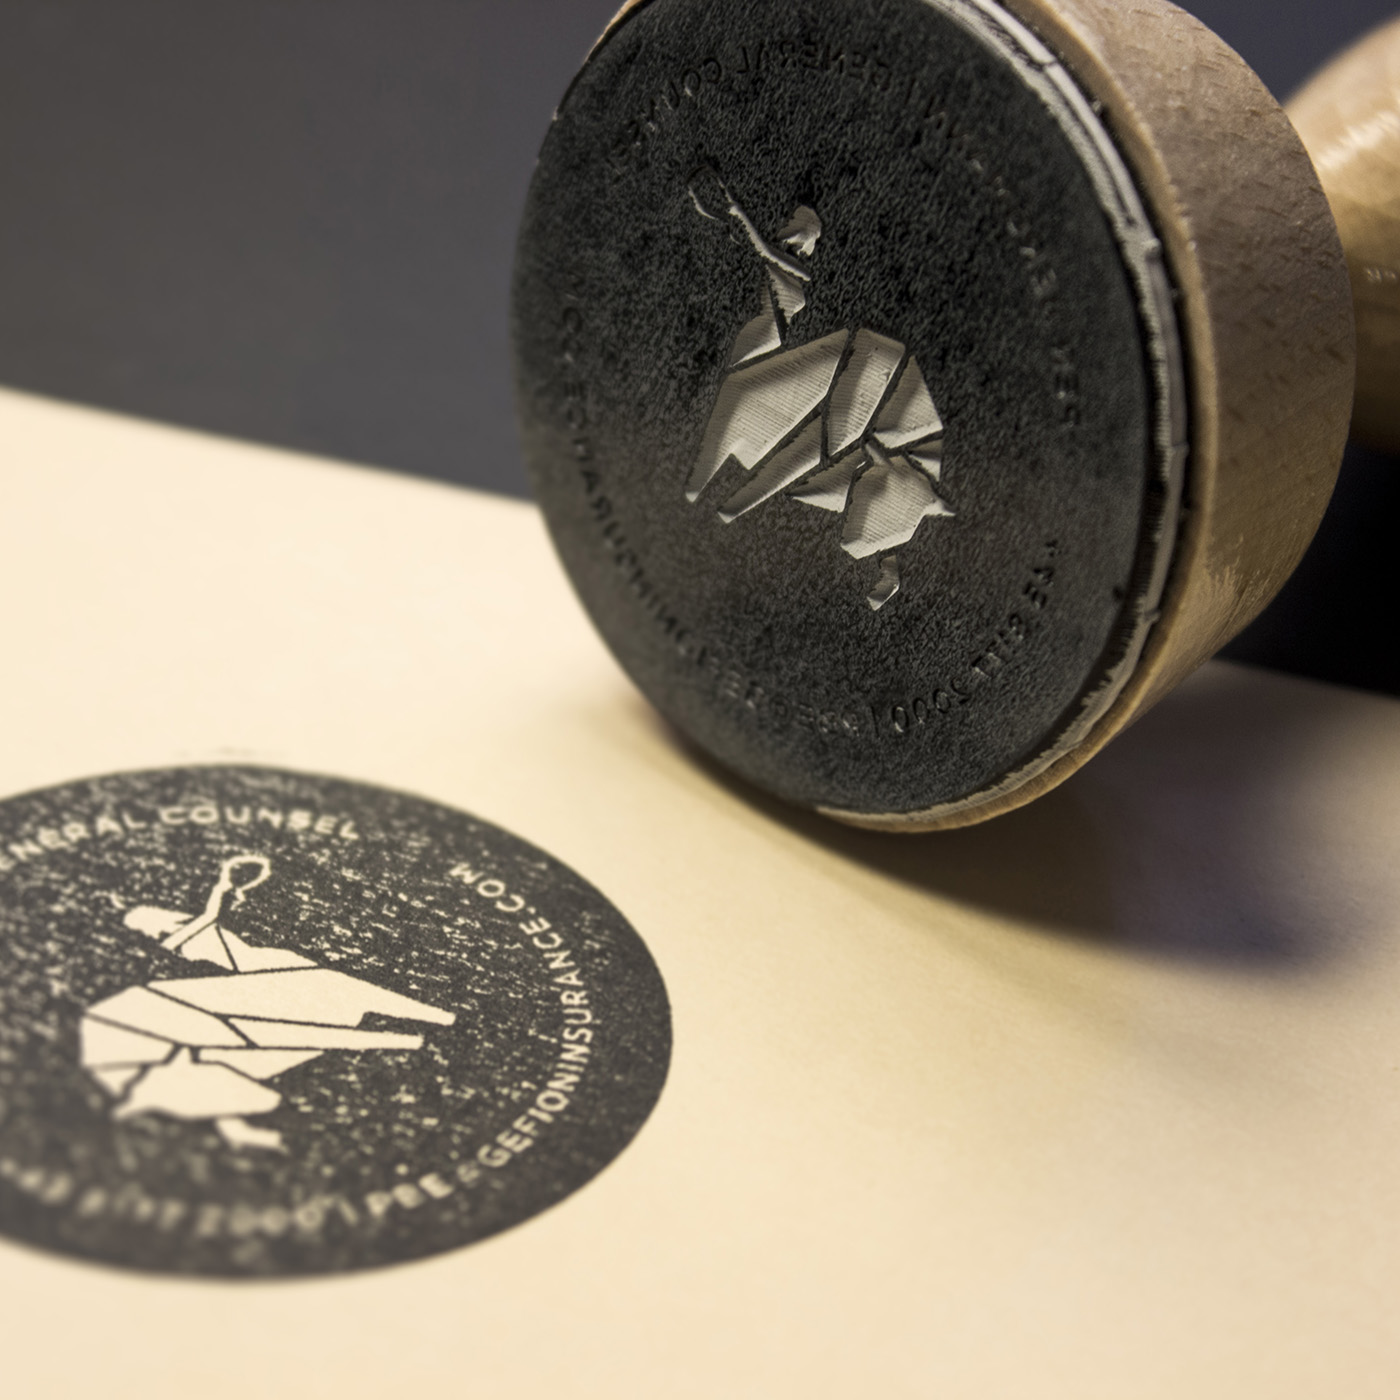 Traditional rubber stamp with graphic design done by Johannes Torpe Studios